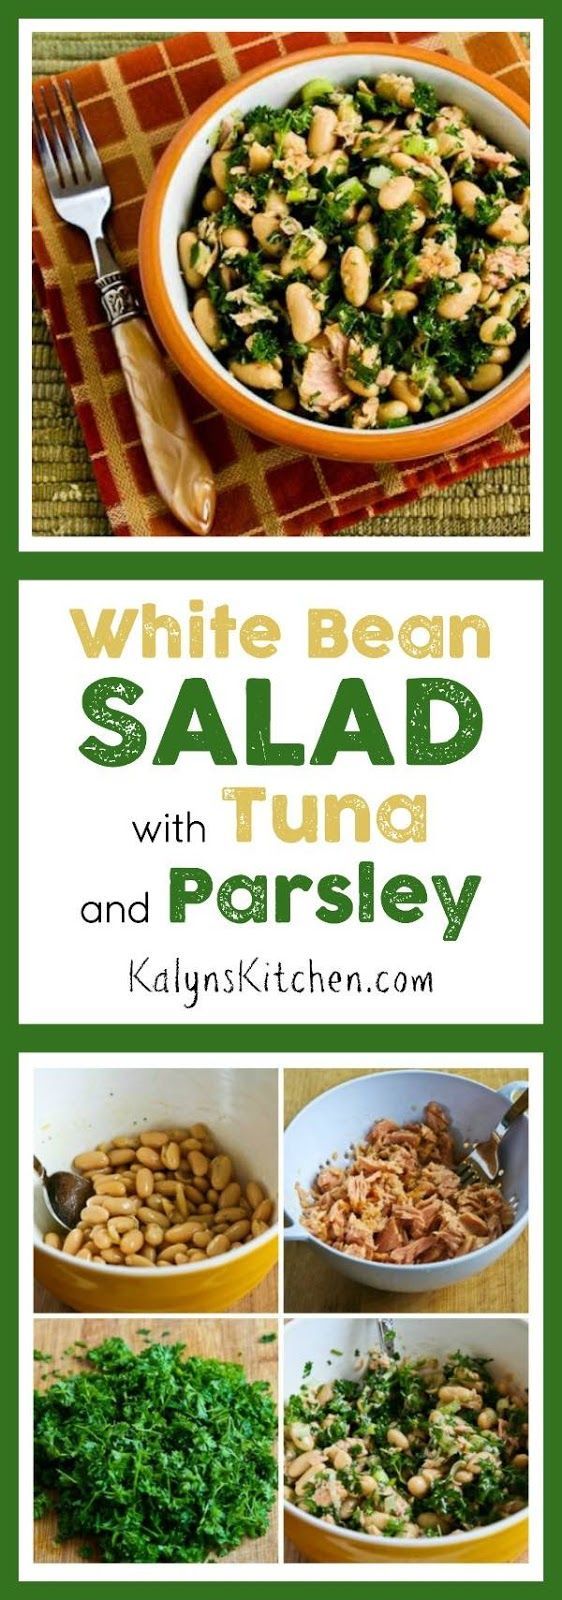 White Bean Salad with Tuna and Parsley | White Bean Salads, Bean ...